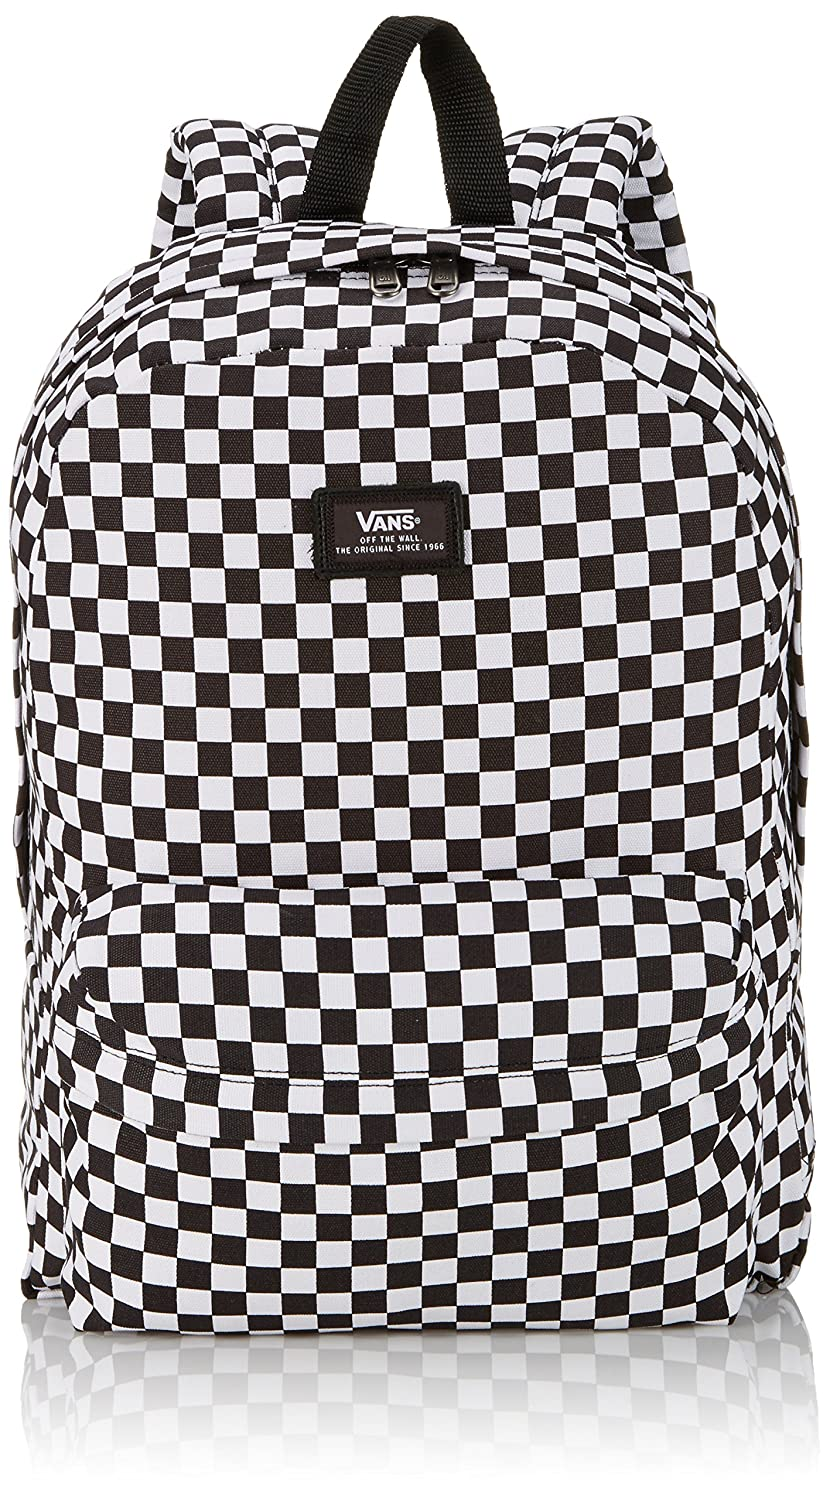 Vans Old Skool Ii Mochila Hombre Multicolor black white Check Talla Unica